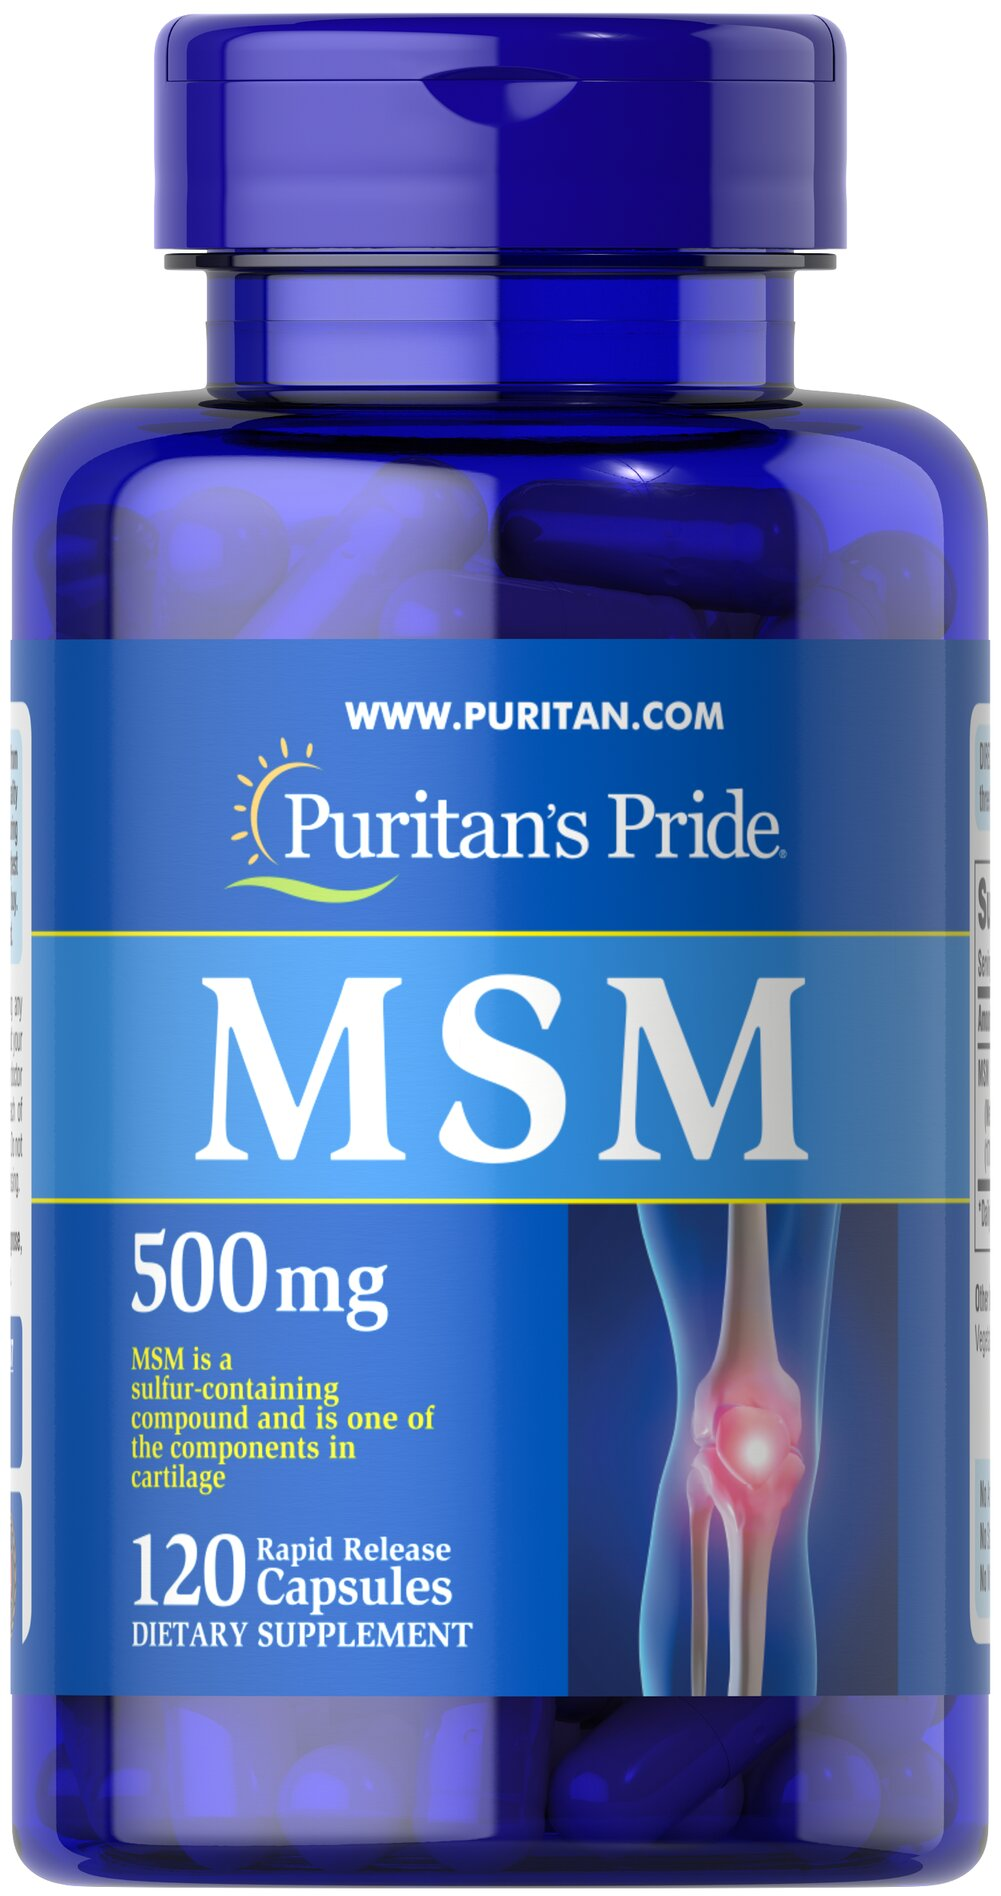 MSM 500 mg <p><strong>Methylsulfonylmethane (MSM)</strong> is a natural source of sulfur, one of the major building blocks of glycosaminoglycans.** Glycosaminoglycans are key structural components in cartilage and play an important role in the maintenance of joint cartilage. ** </p> 120 Capsules 500 mg $8.99